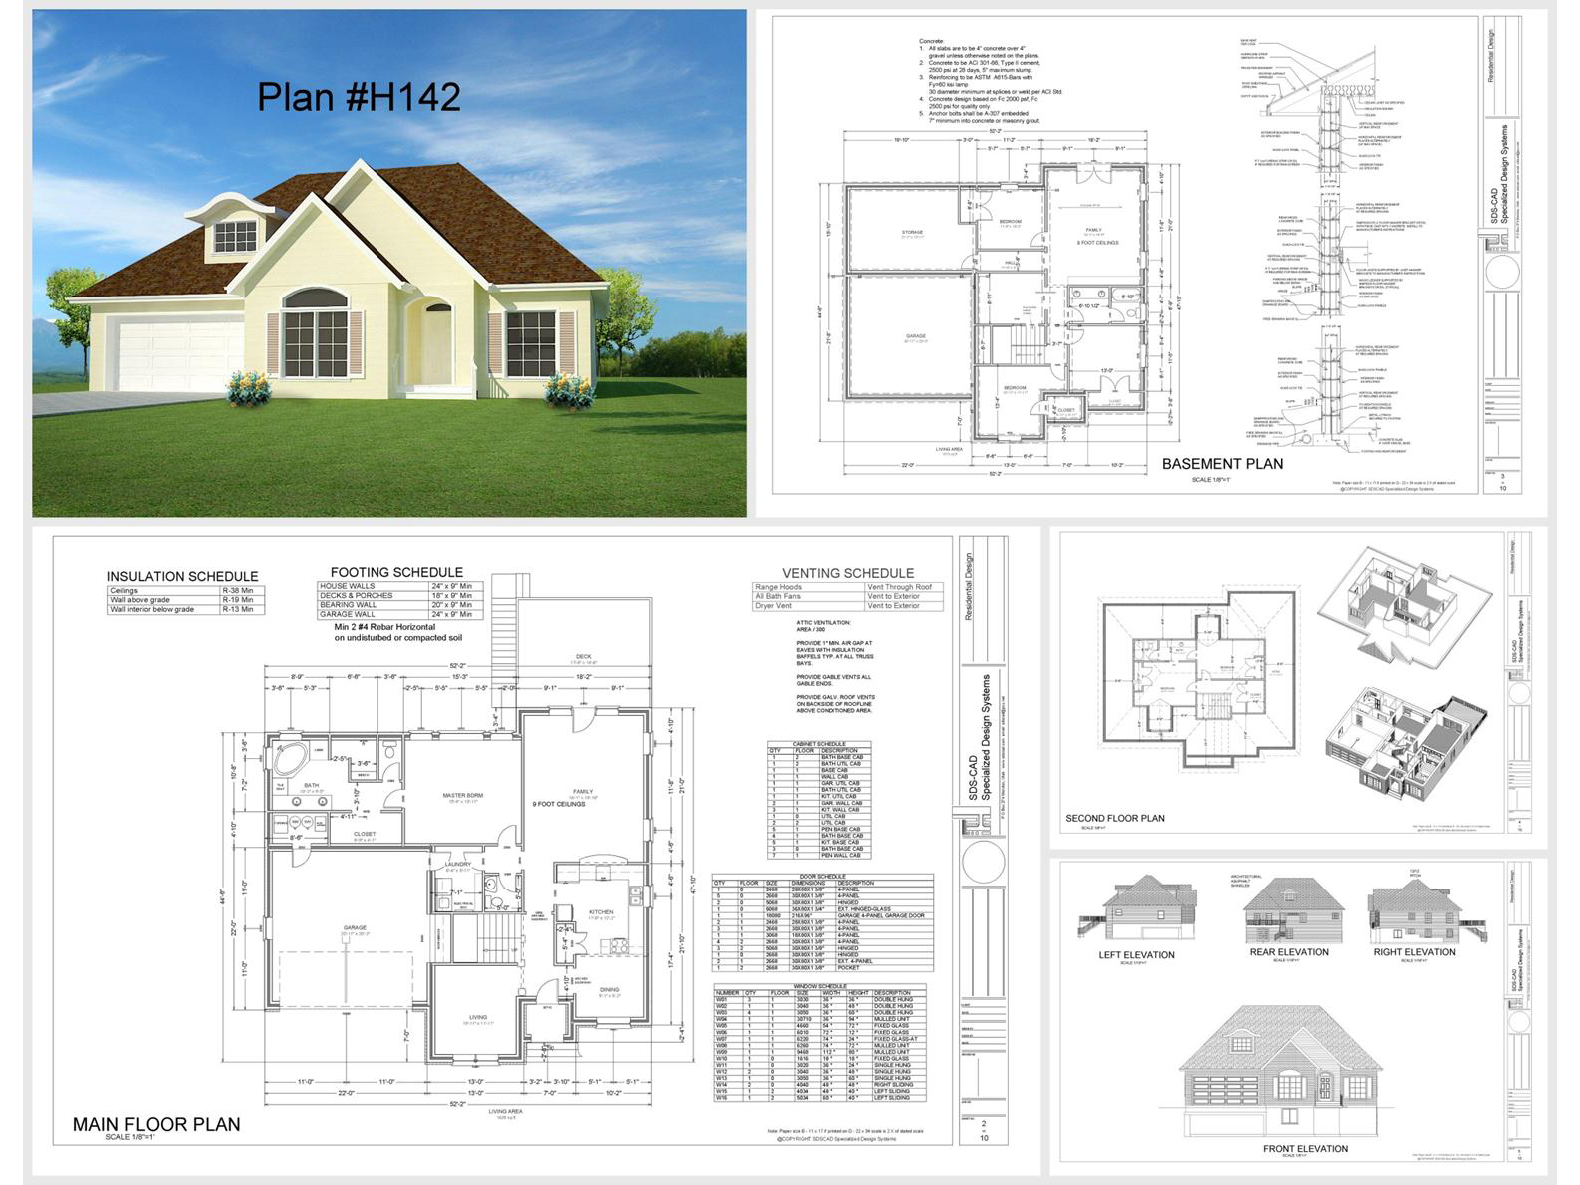 100 house plans catalog page 041 9 plans for House plan catalogs free